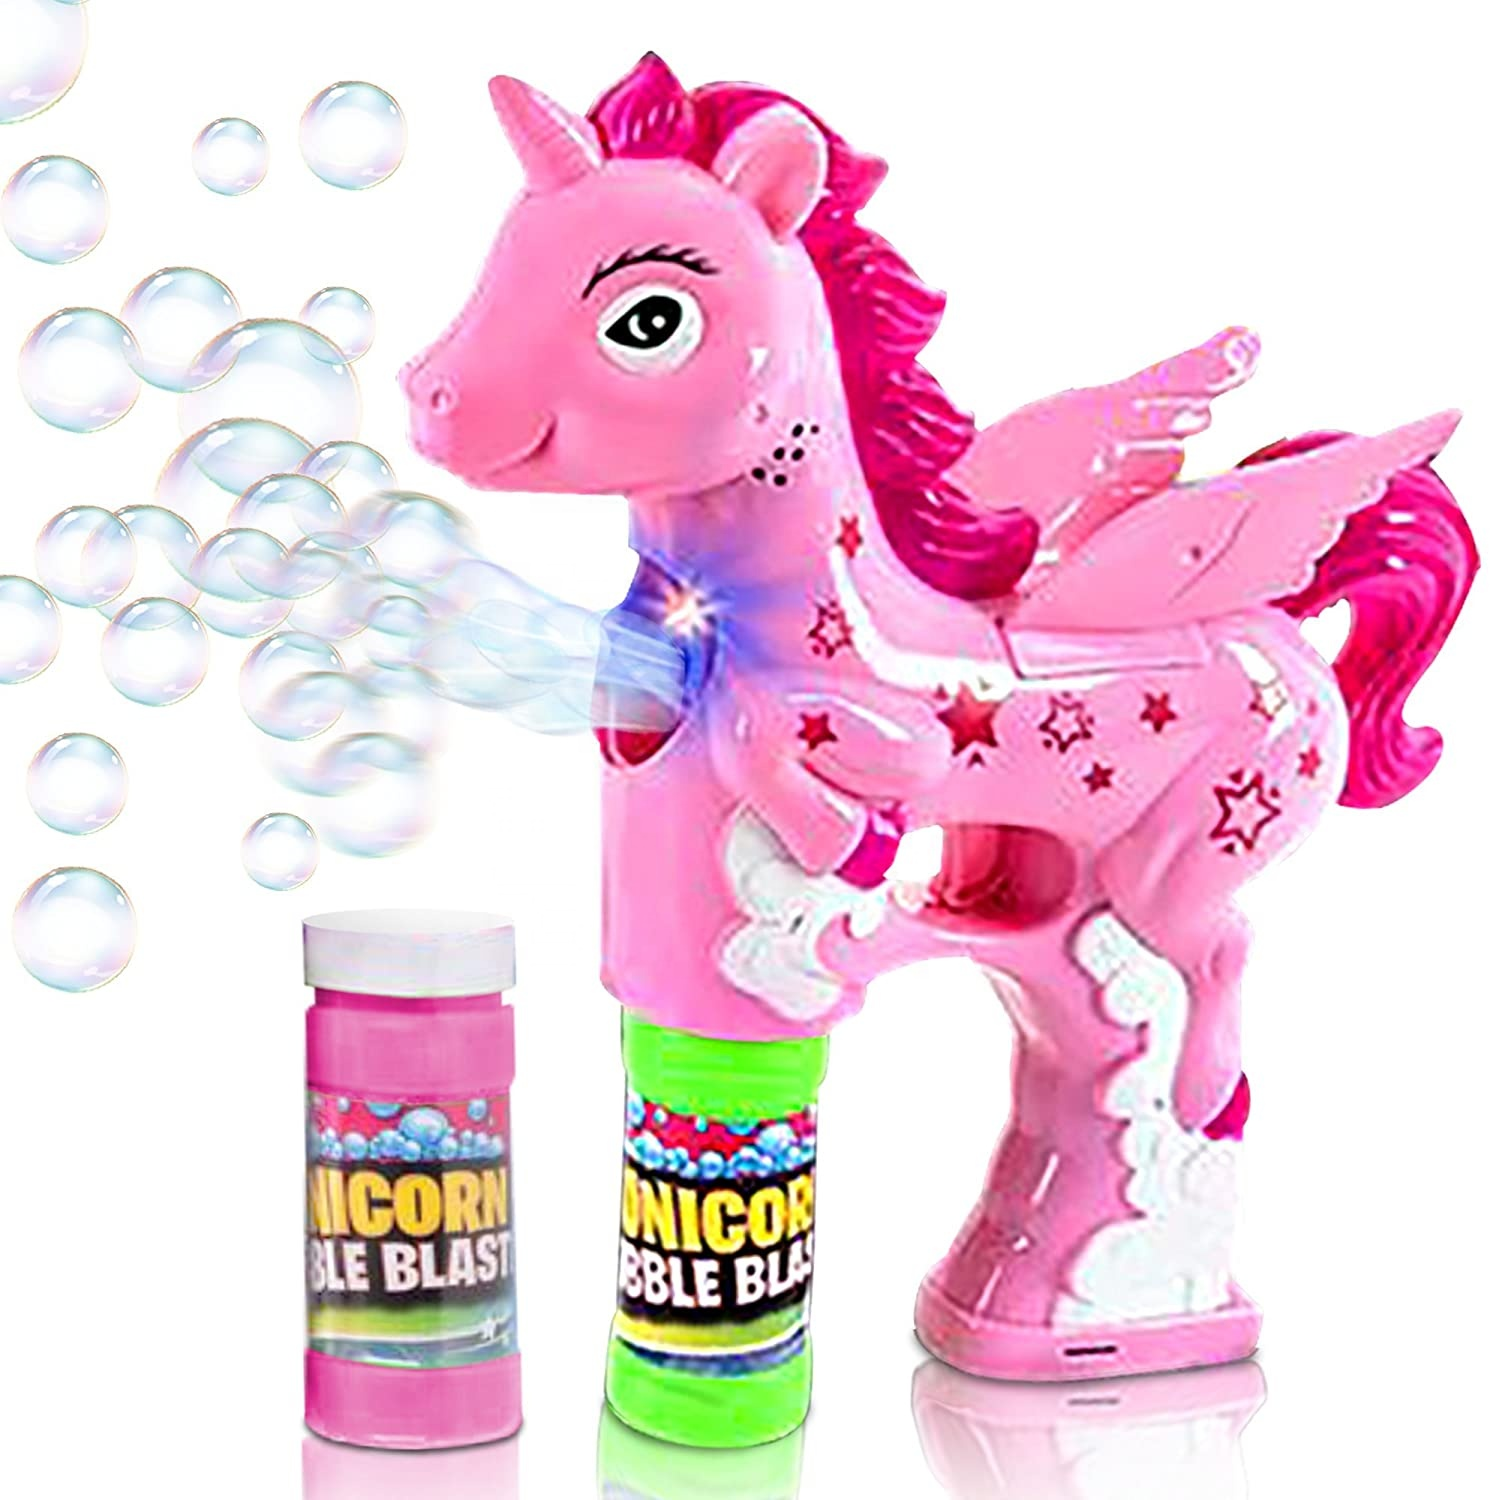 Bubble <strong>Gun</strong>, Bubble Blaster <strong>Gun</strong> Bubble Shooter Soap Bubble Toy LED Bubble Ty <strong>Gun</strong>, Unicorn Bubble <strong>Gun</strong> with Solution Costume toy